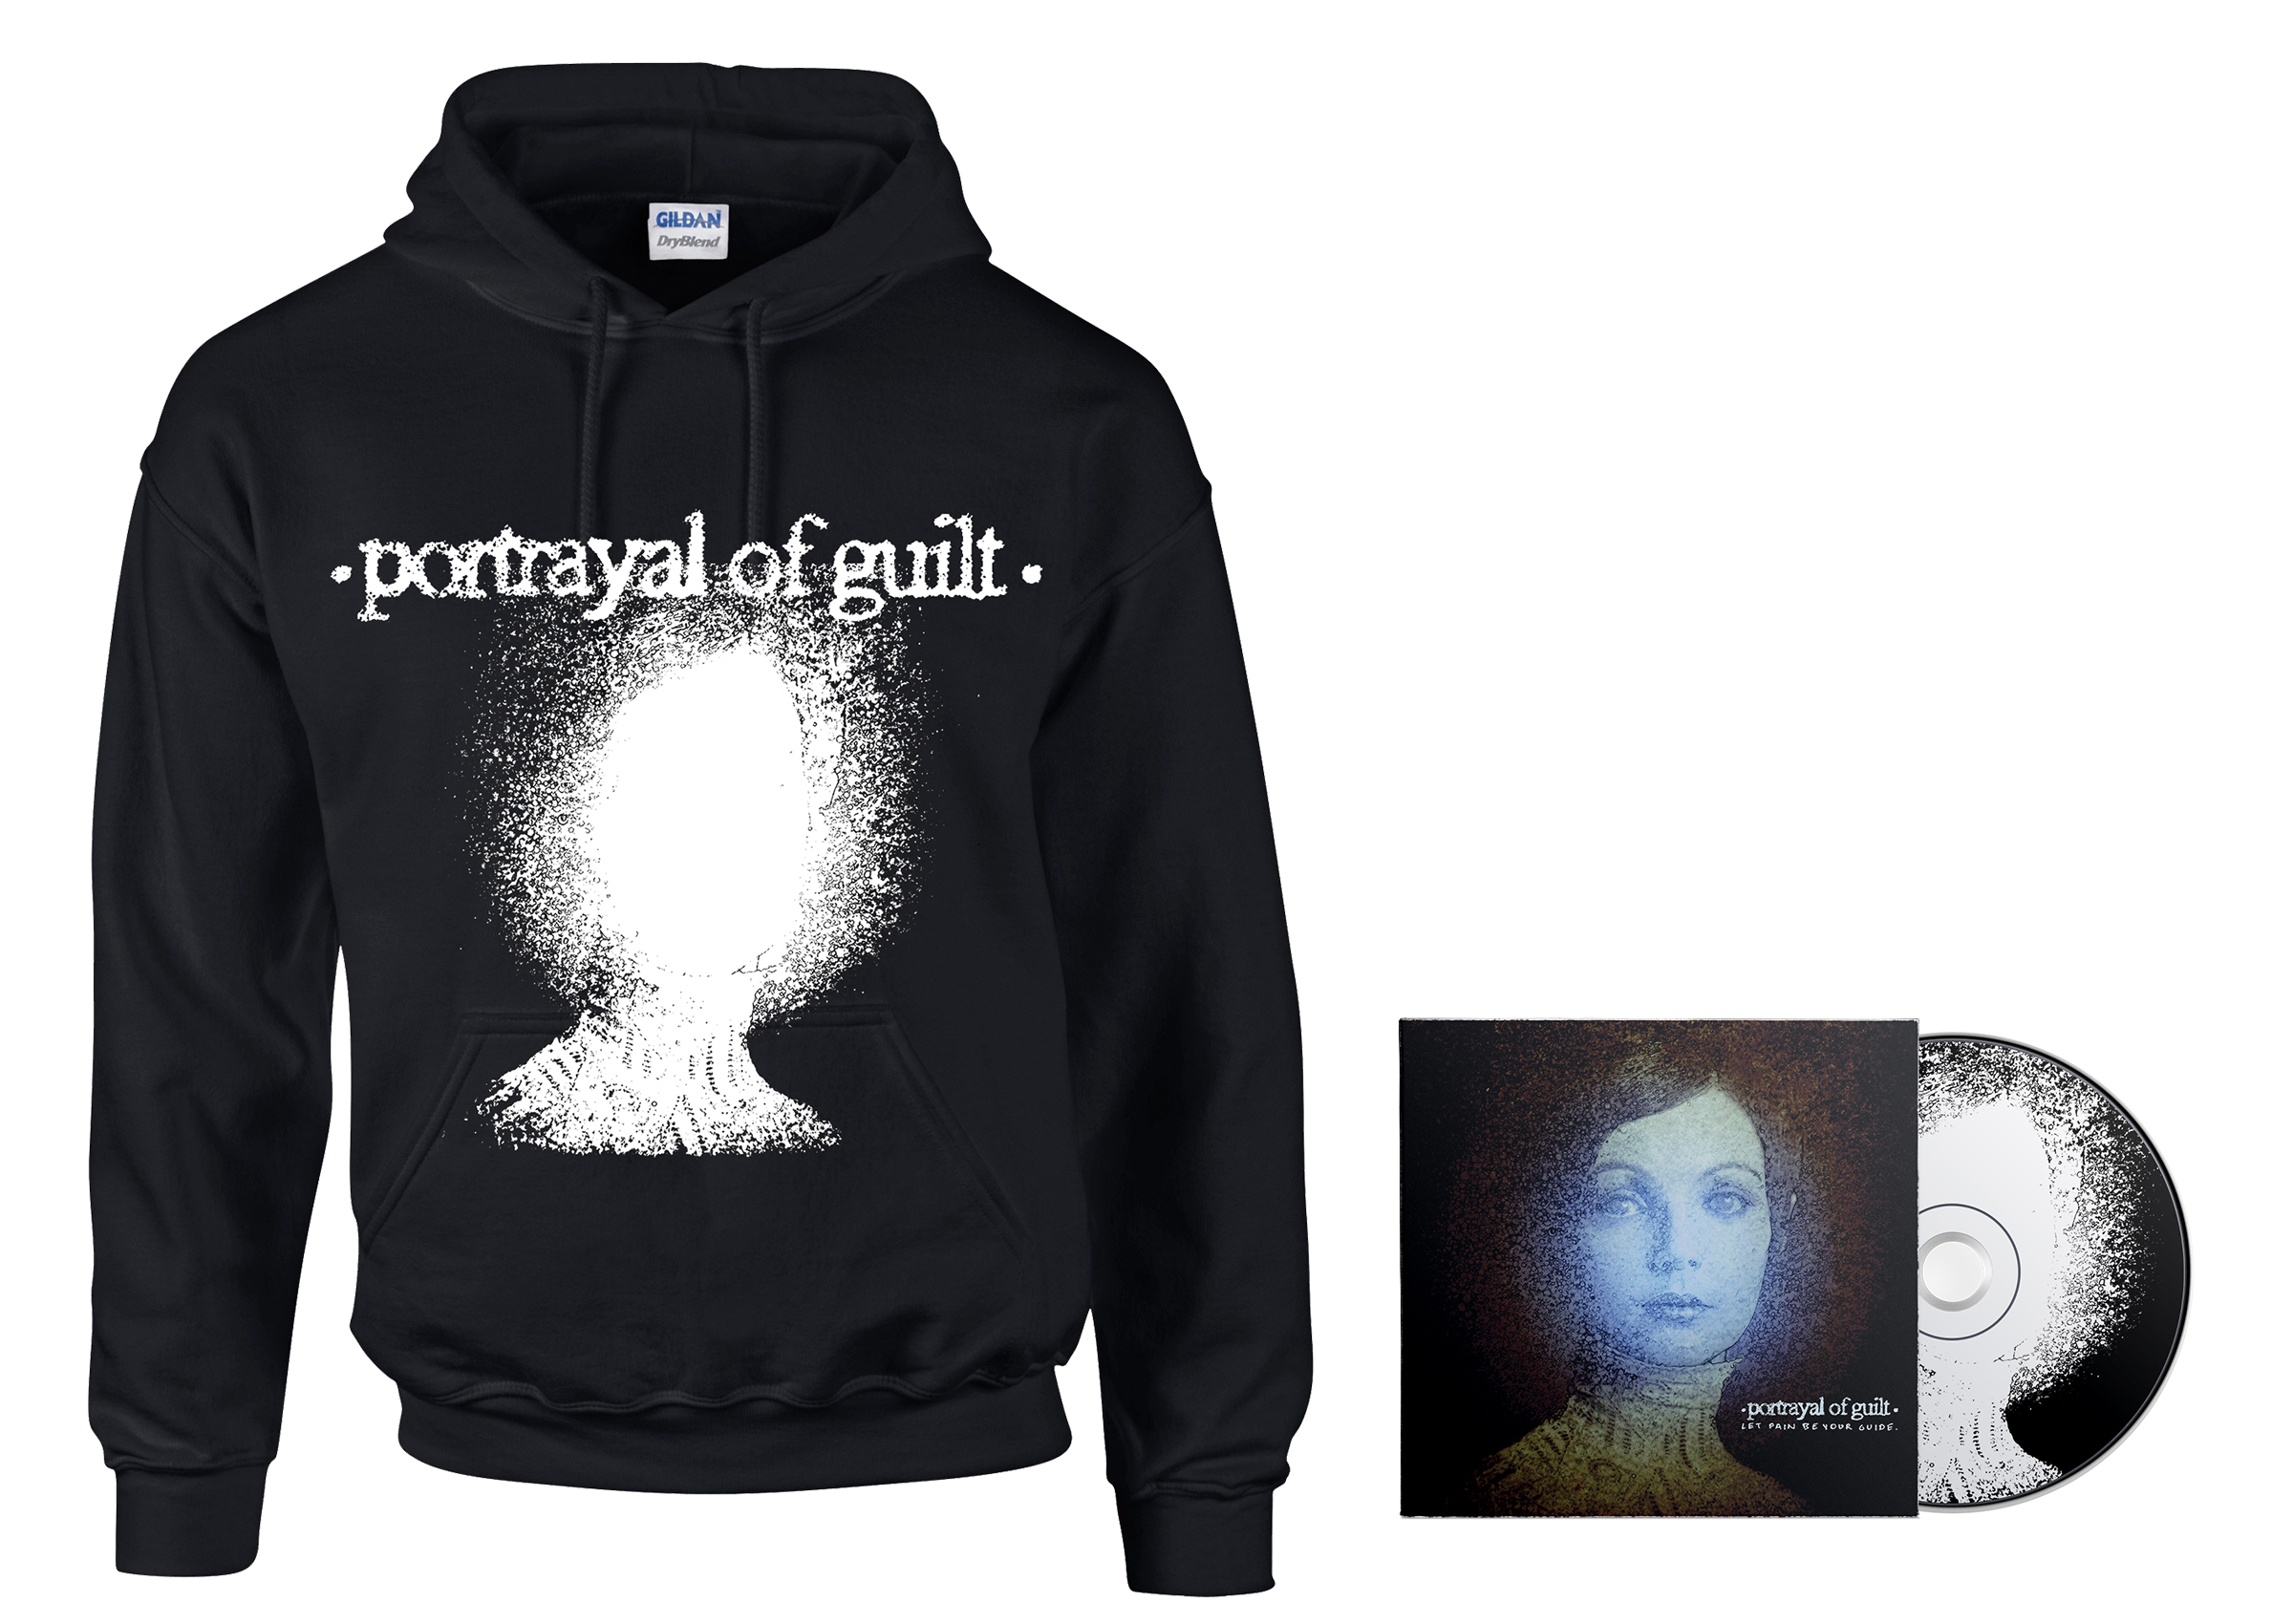 Portrayal of Guilt - 'Let Pain Be Your Guide' lightheaded hoodie + CD